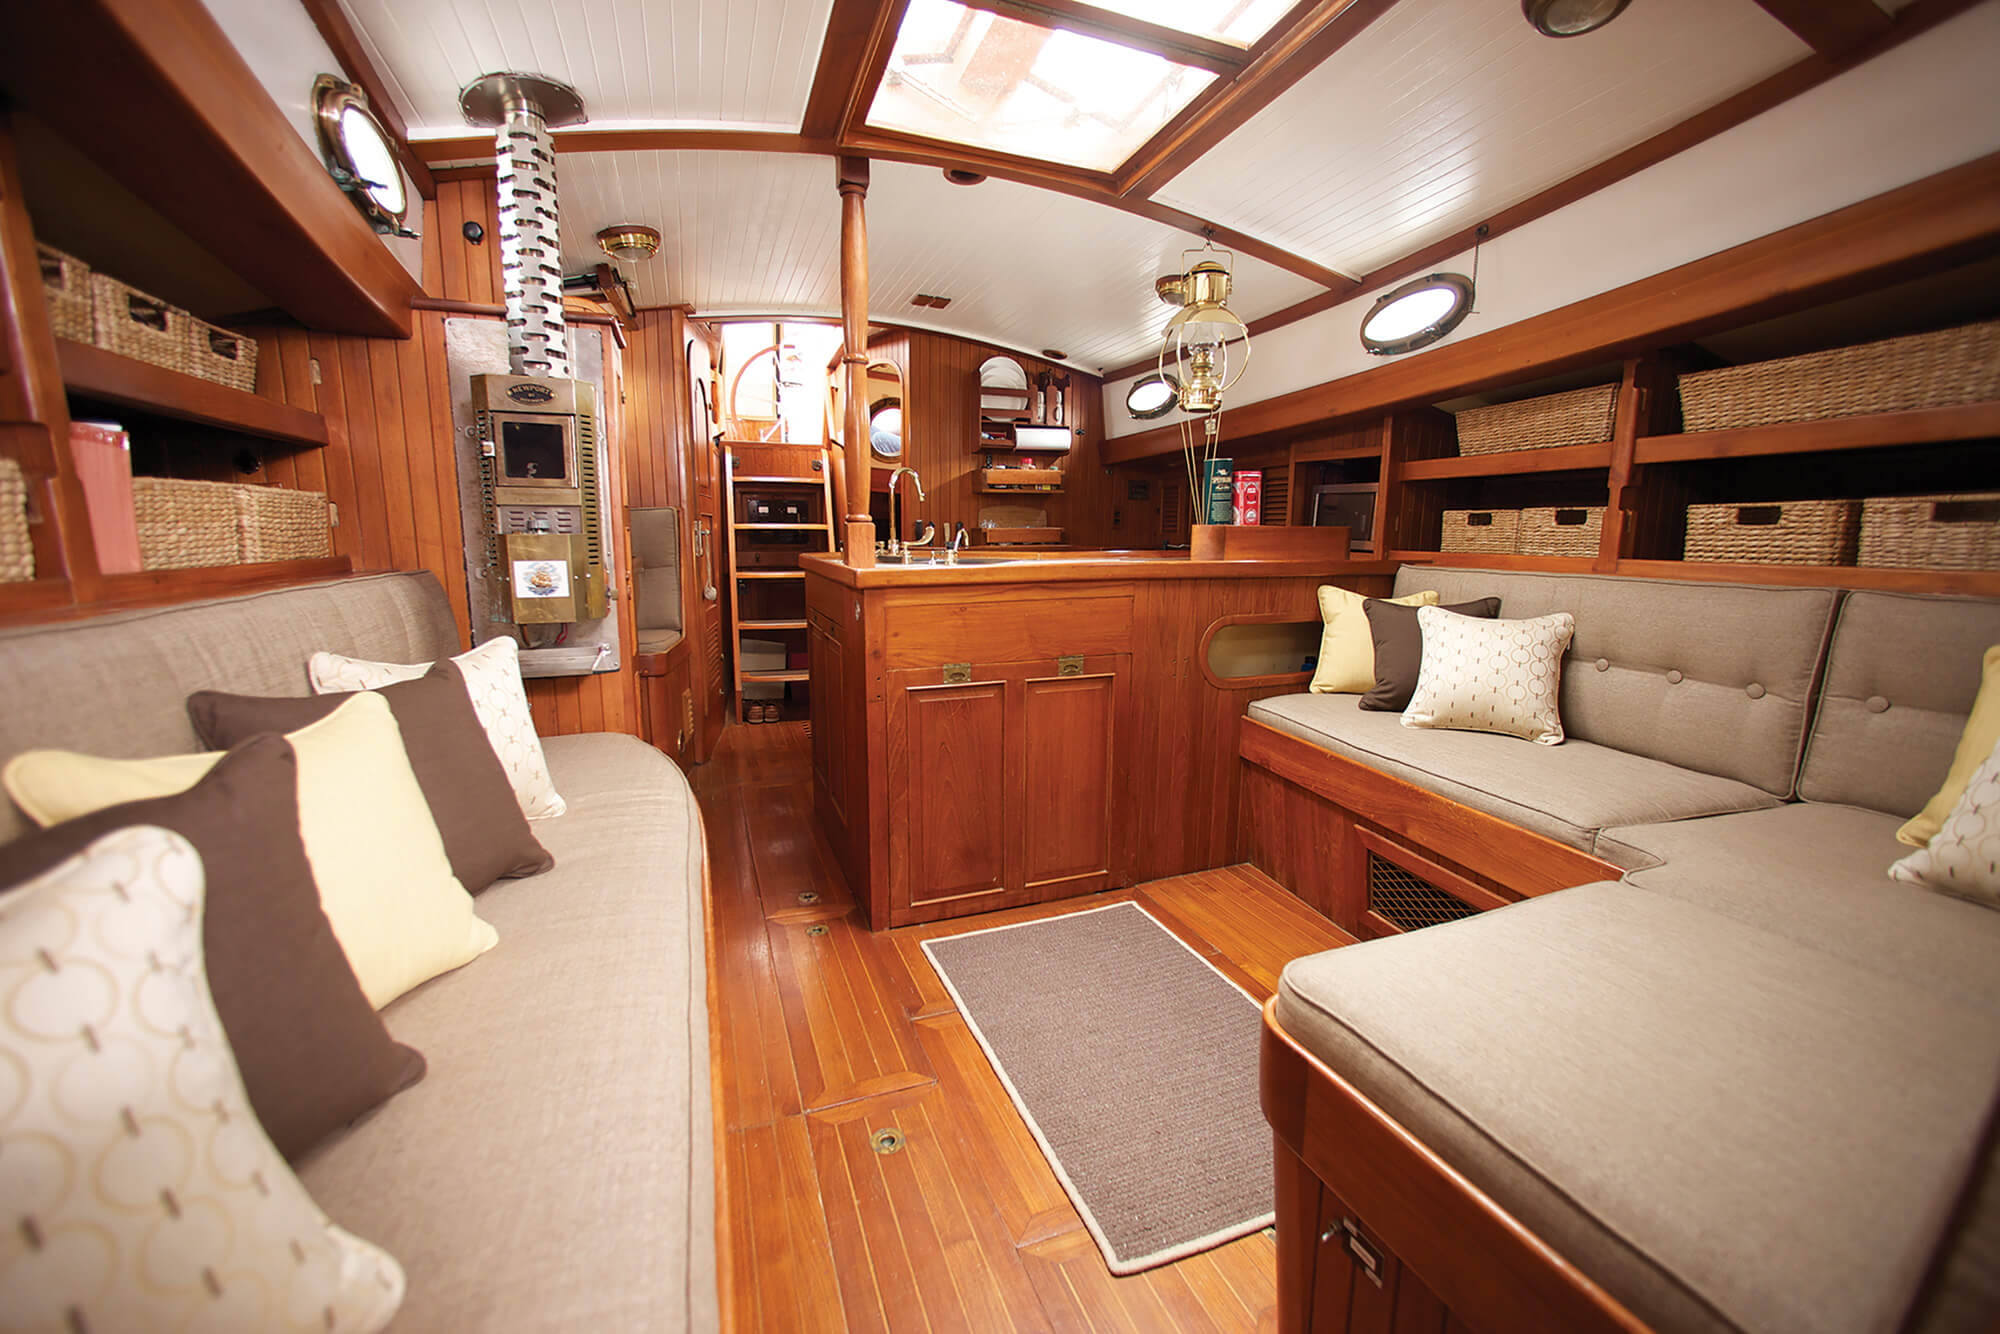 ... Shot Of Sailing Boat Cabin With Cushion And Pillows Made Using  Sunbrella Fabrics In A Brown ...